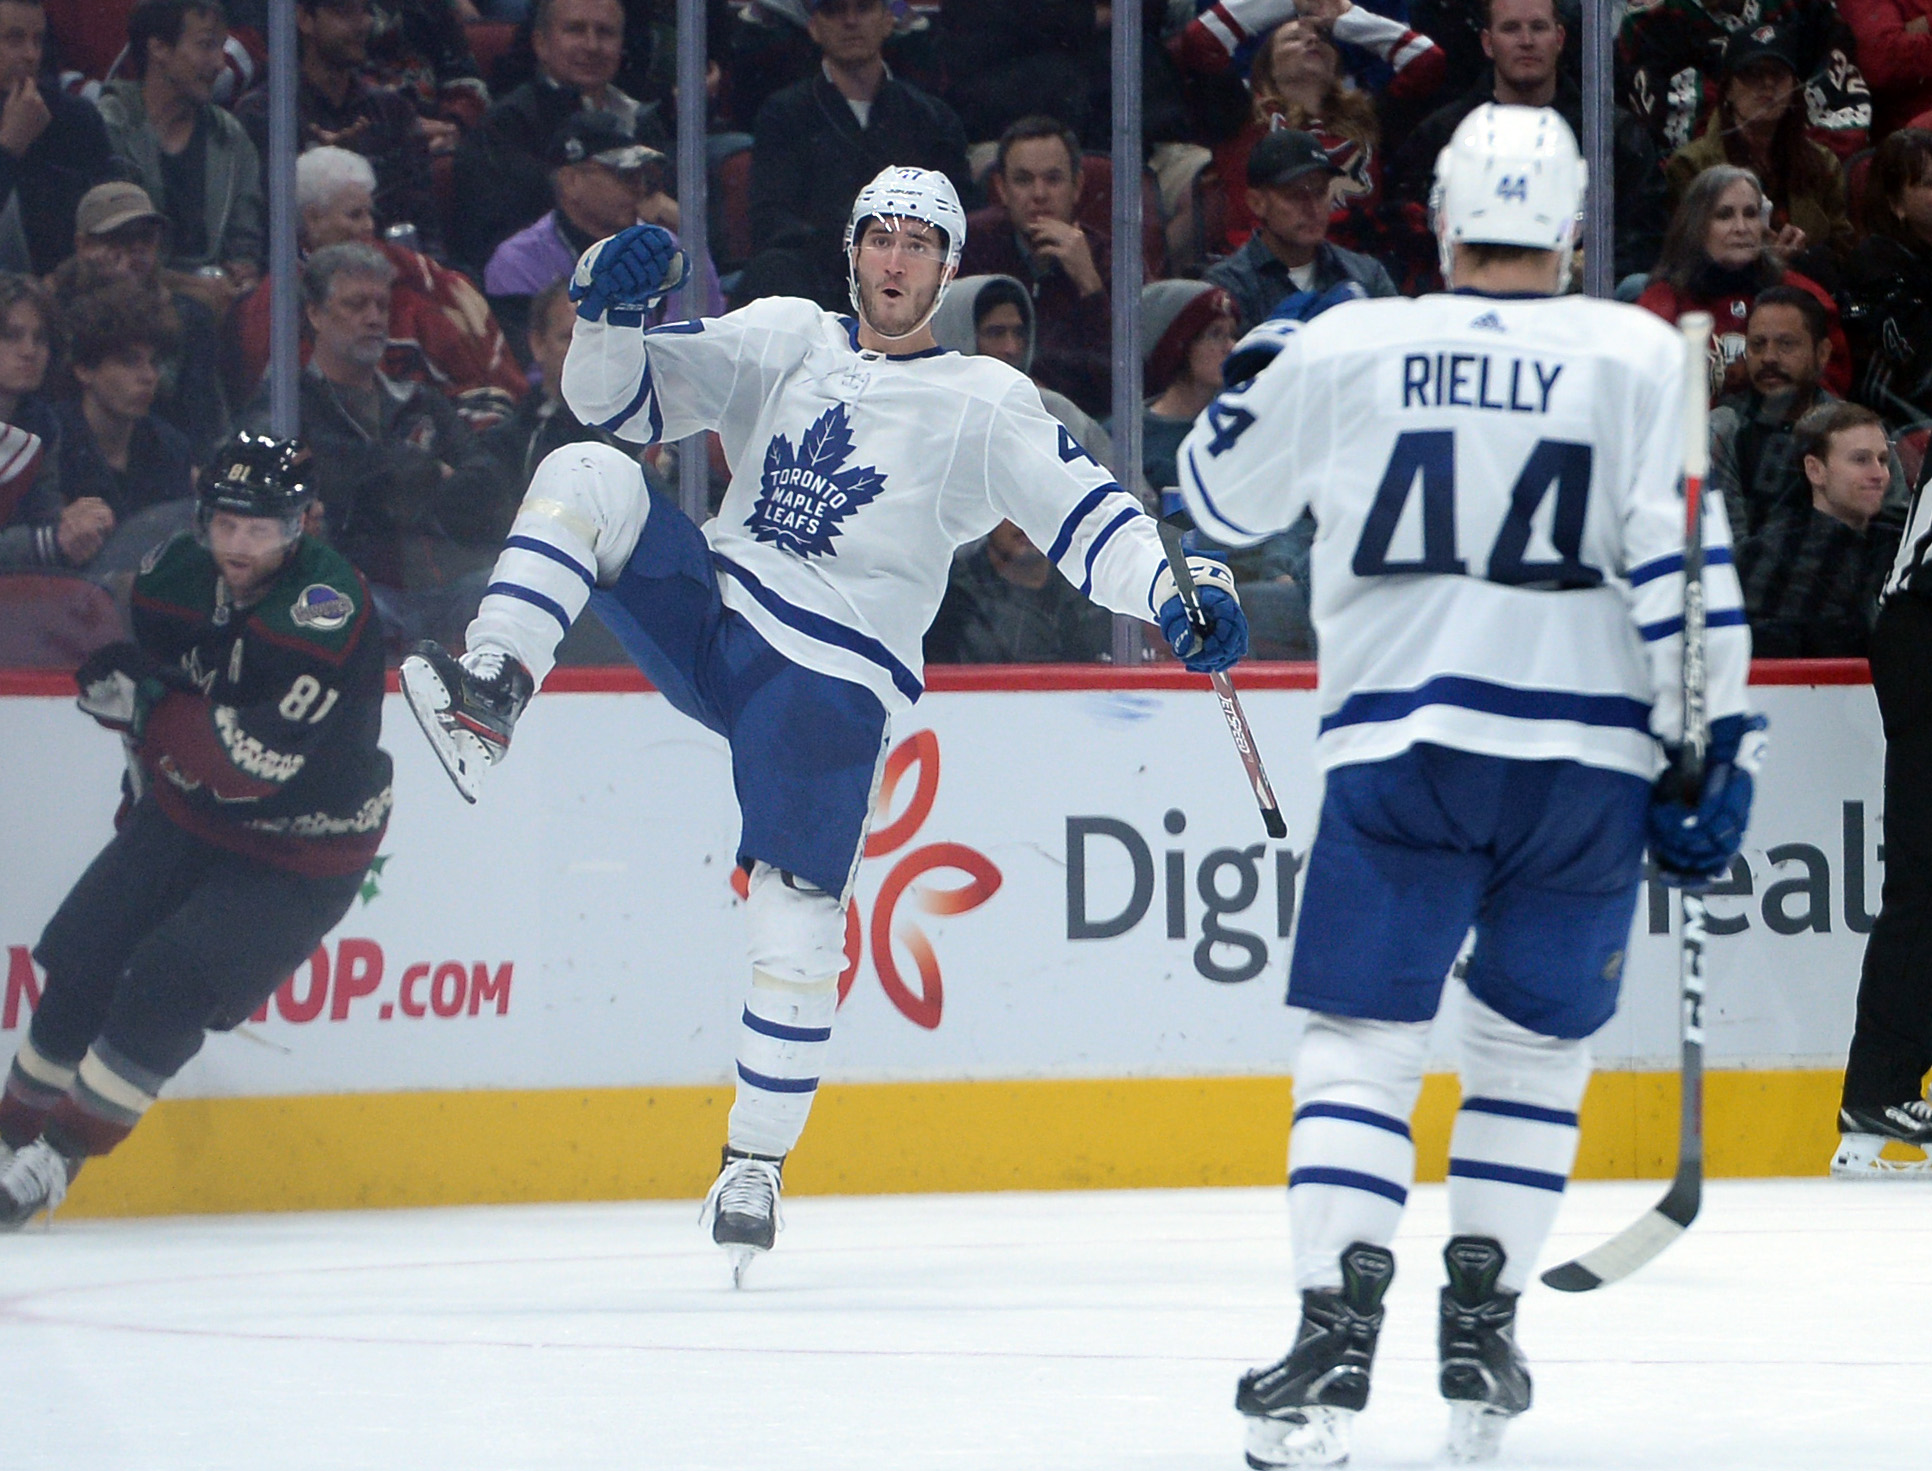 Barrie leads Maple Leafs past Avalanche 5-3